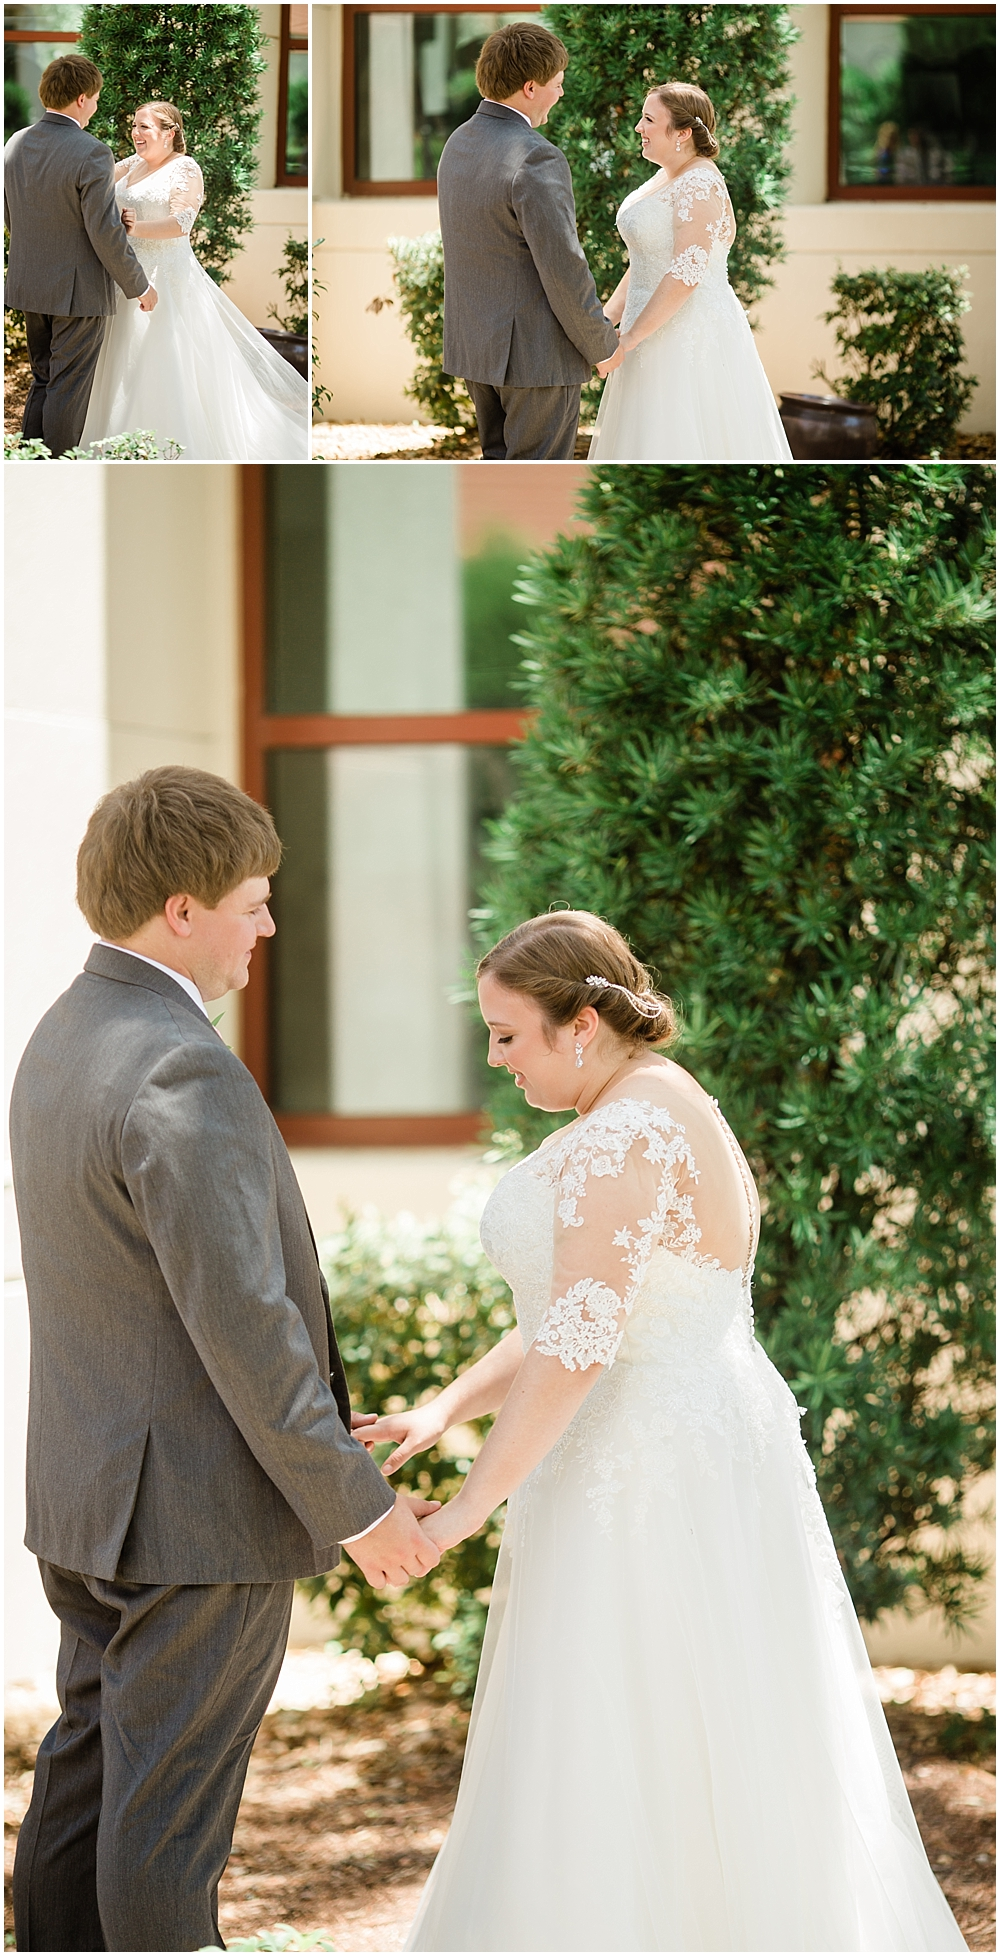 Ashton-Clark-Photography-Wedding-Portrait-Family-Photographer-Mobile-Alabama_0039.jpg